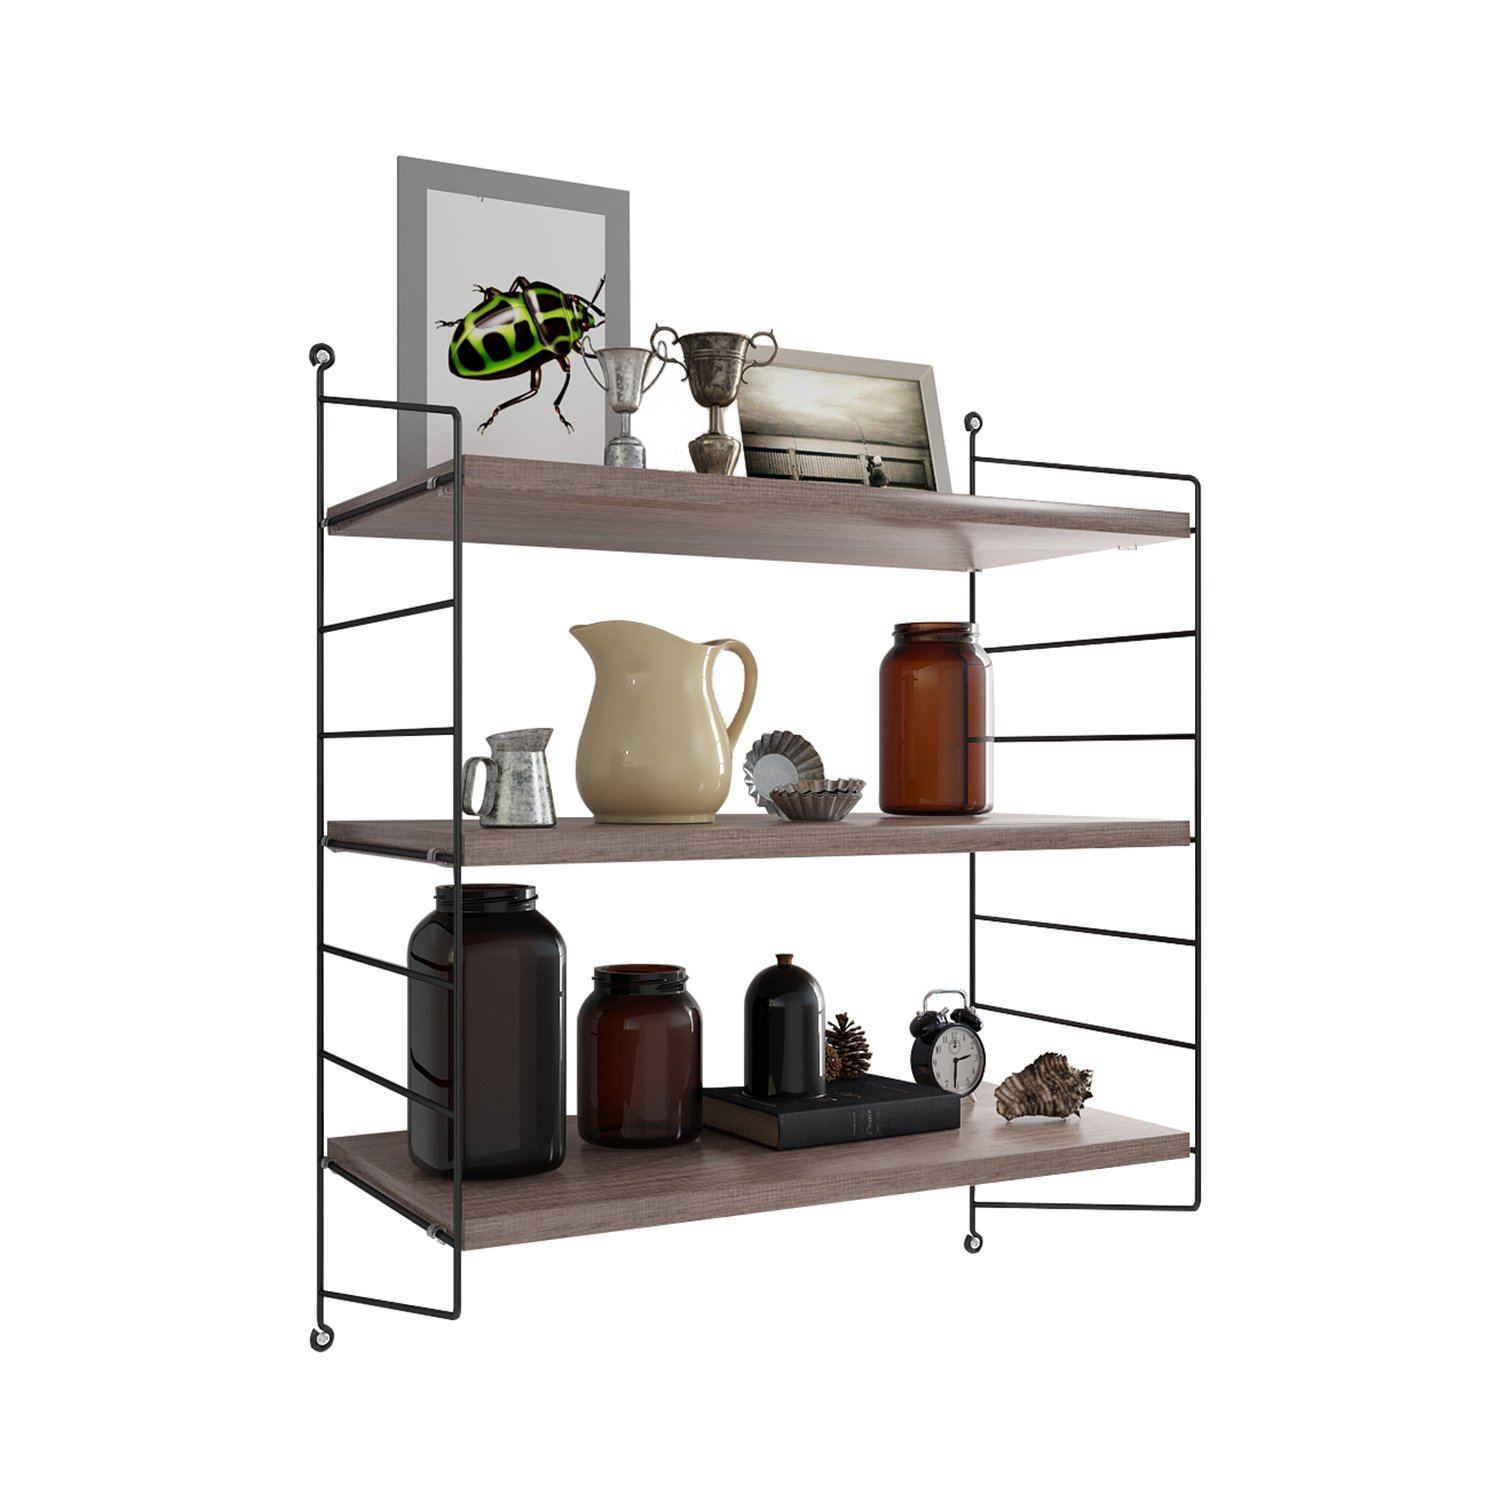 weshinegadgets modern design tier wall mount display floating shelves for shoes storage rack holder home kitchen kijaro chair awesome bookshelf ideas inch computer desk shelf shoe